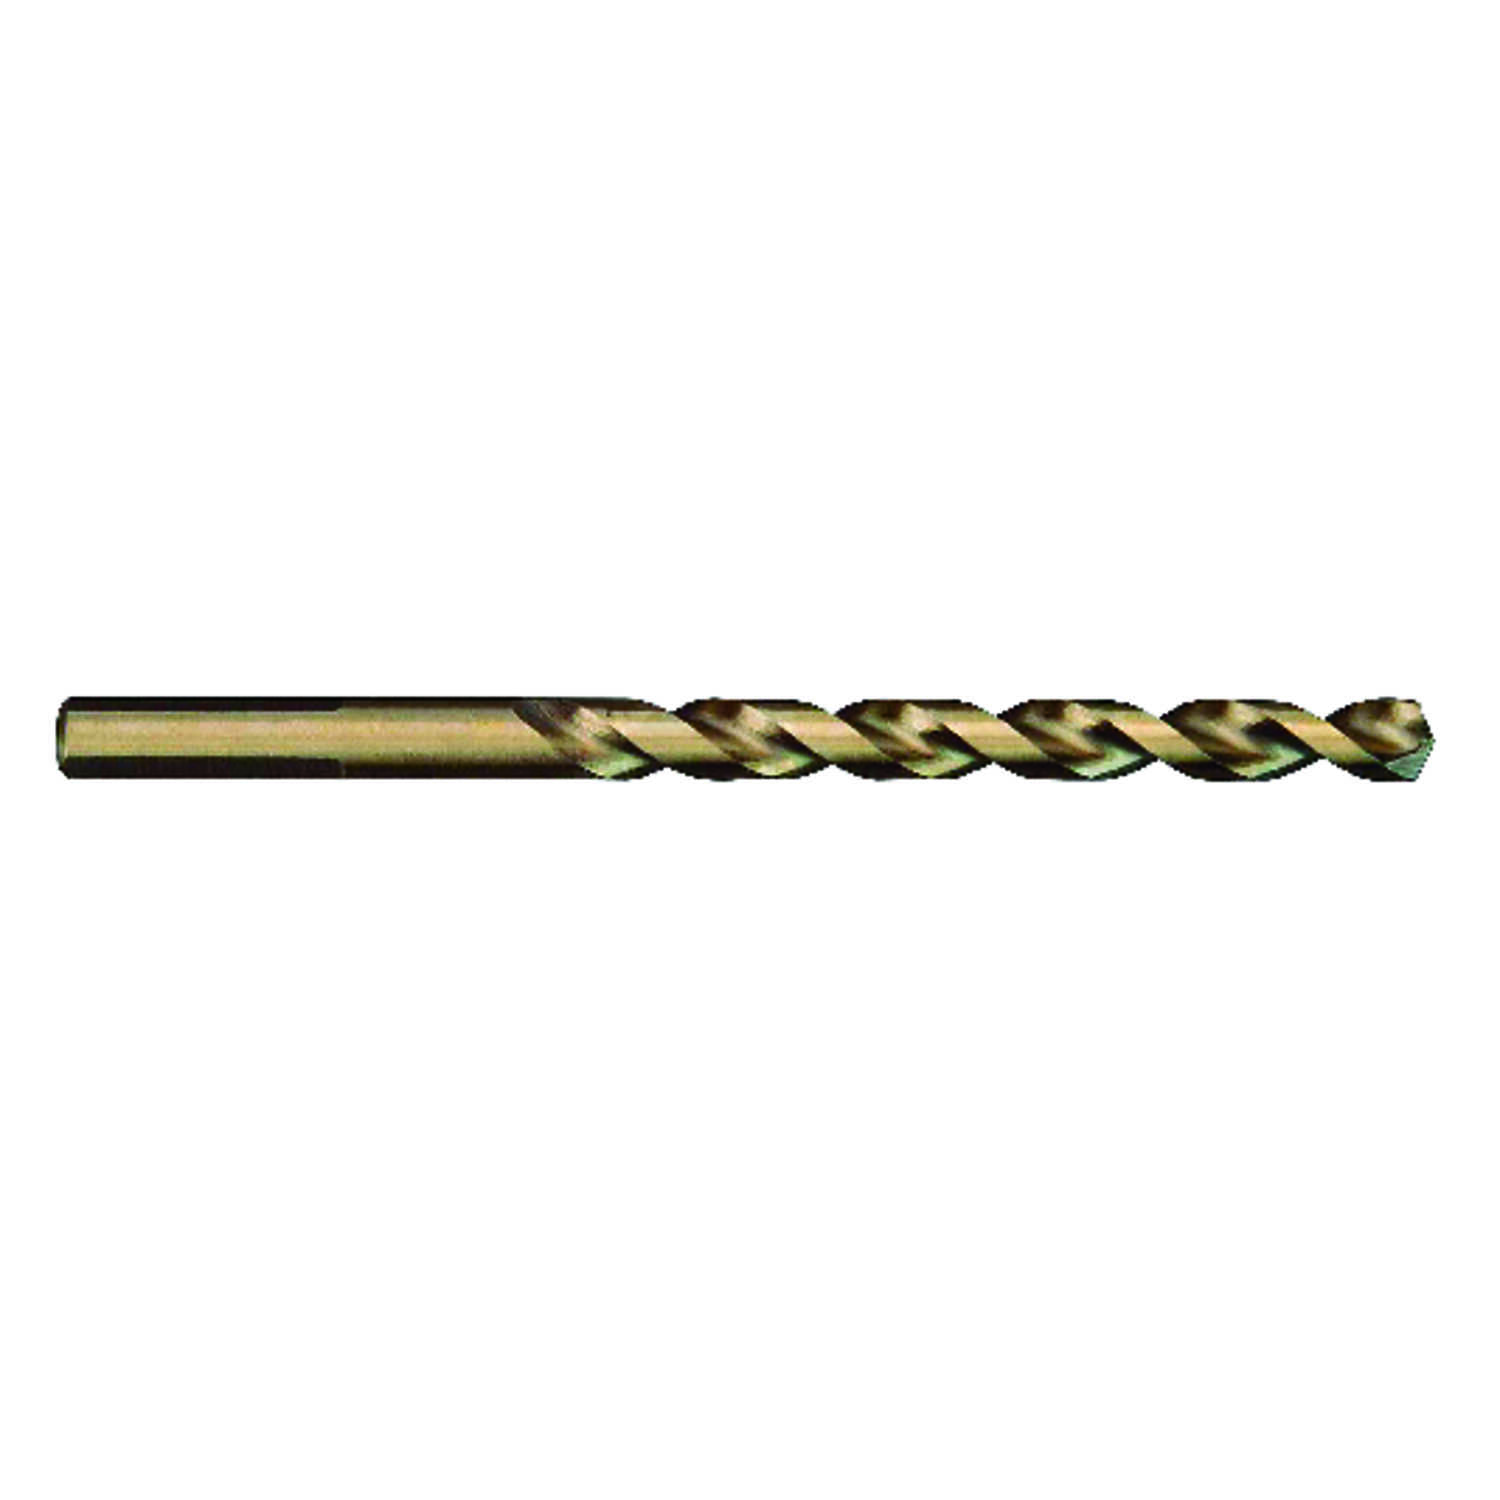 Milwaukee  RED HELIX  1/8 in. Dia. x 2-3/4 in. L Cobalt Steel  THUNDERBOLT  Round Shank  1 pc. Drill